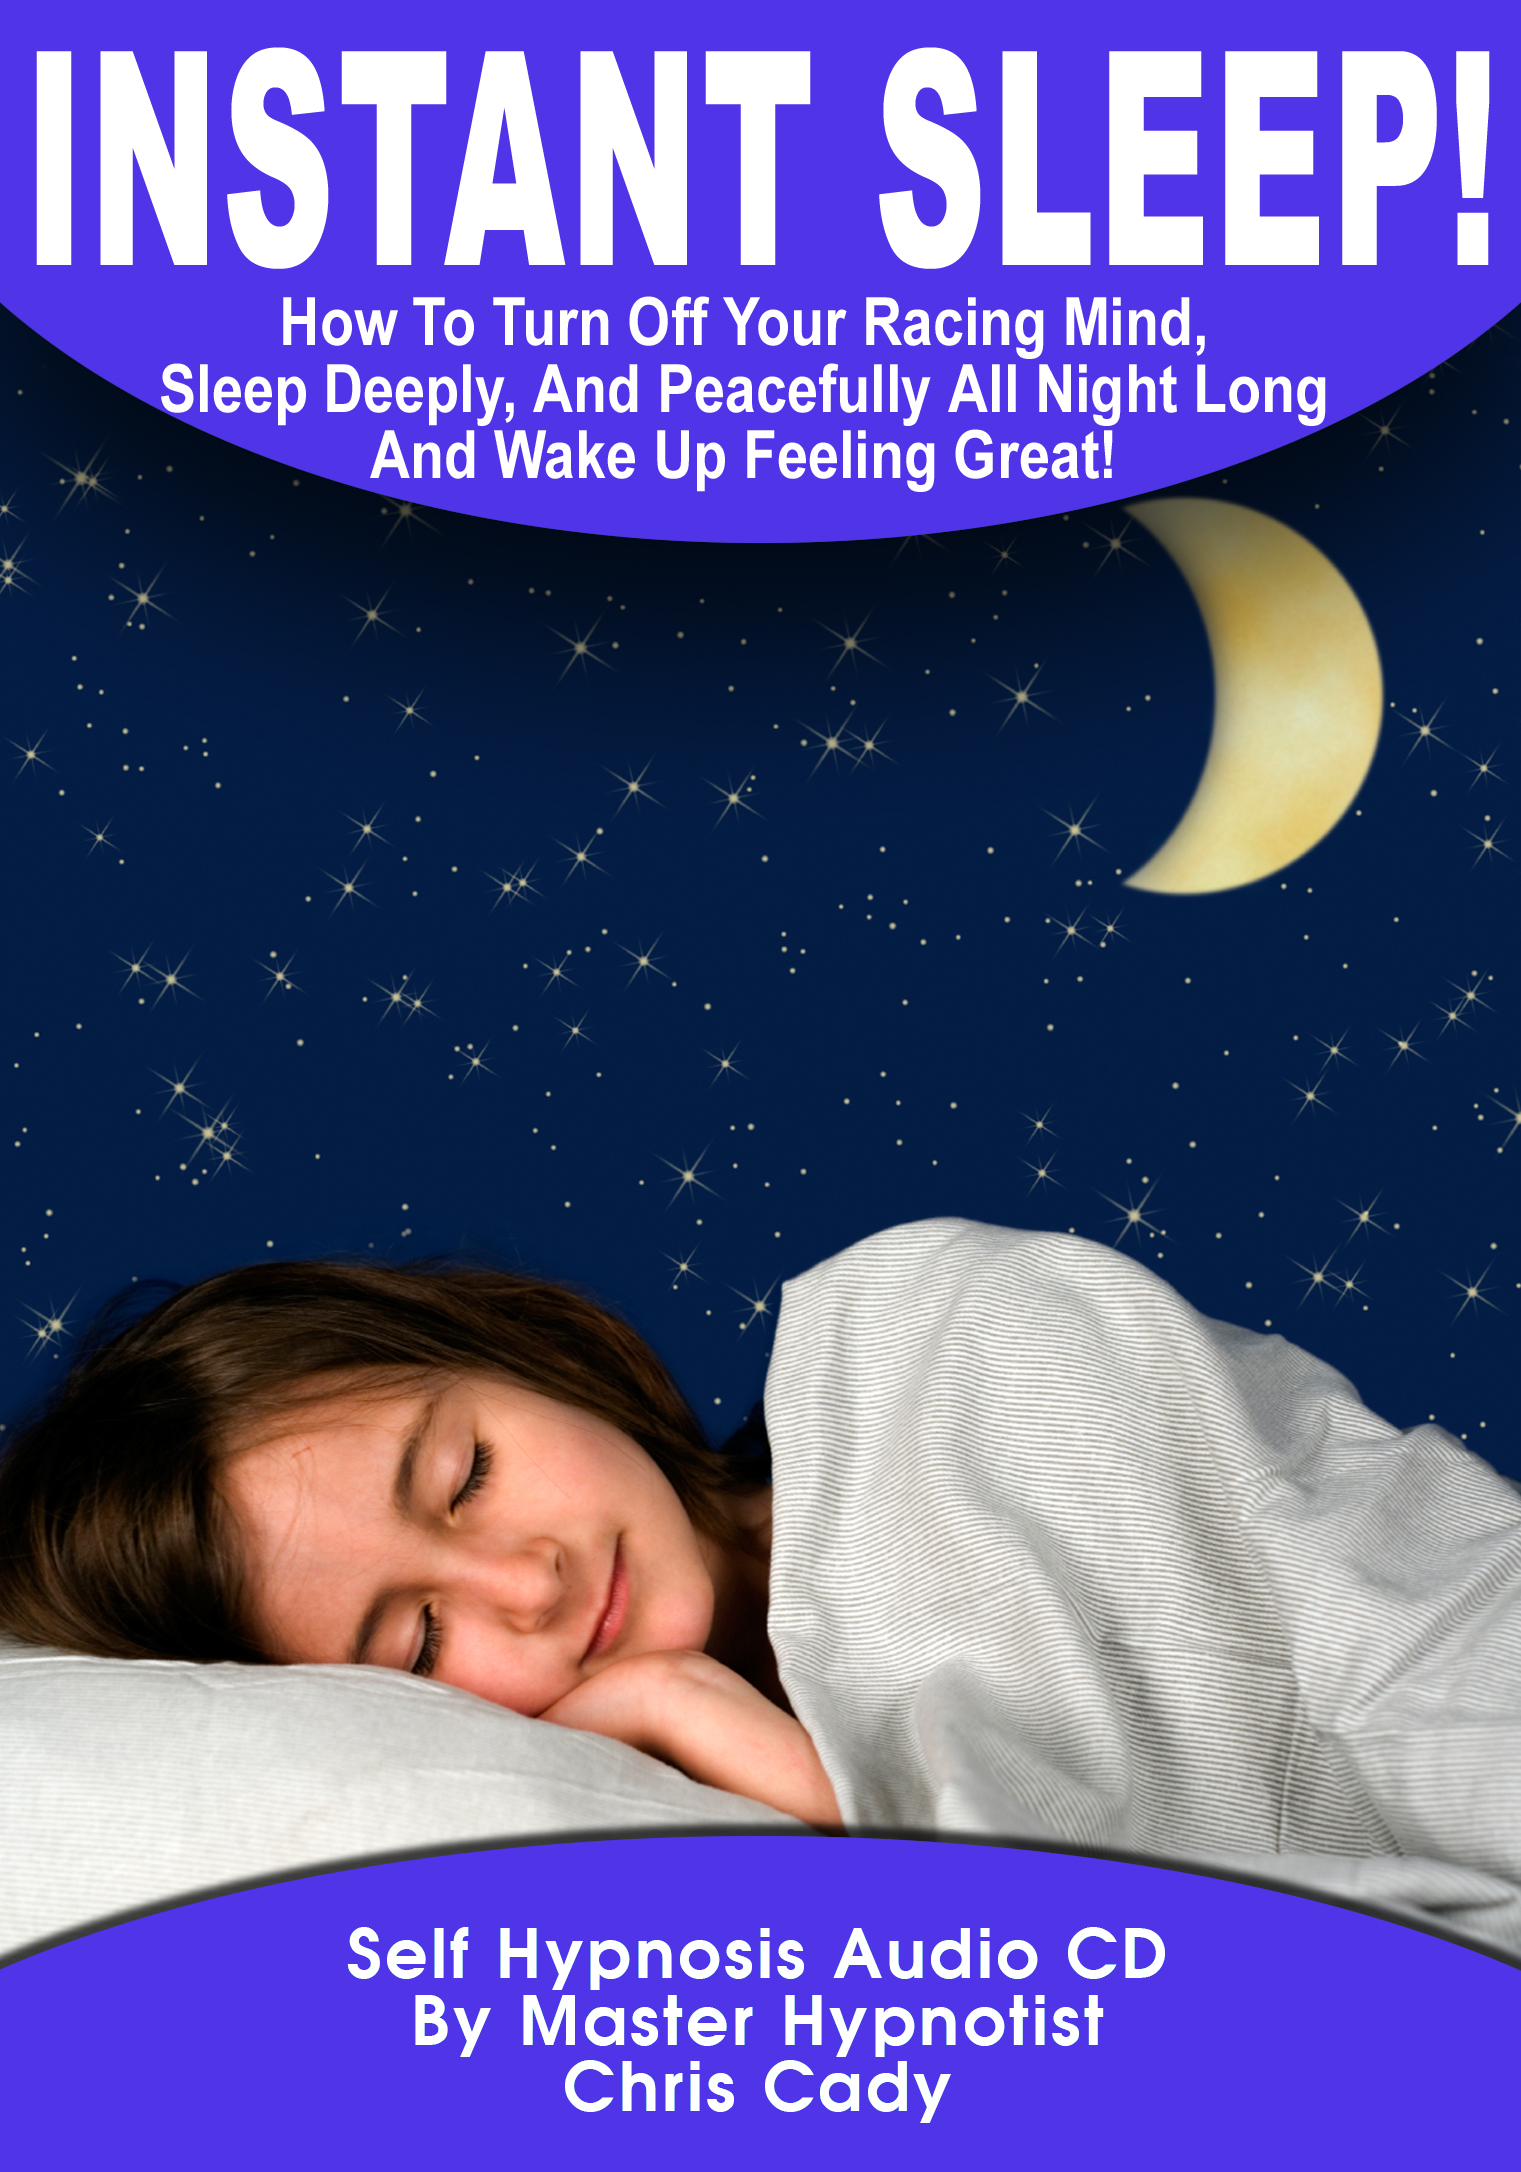 sleep end insomnia with hypnosis cd and mp3 download